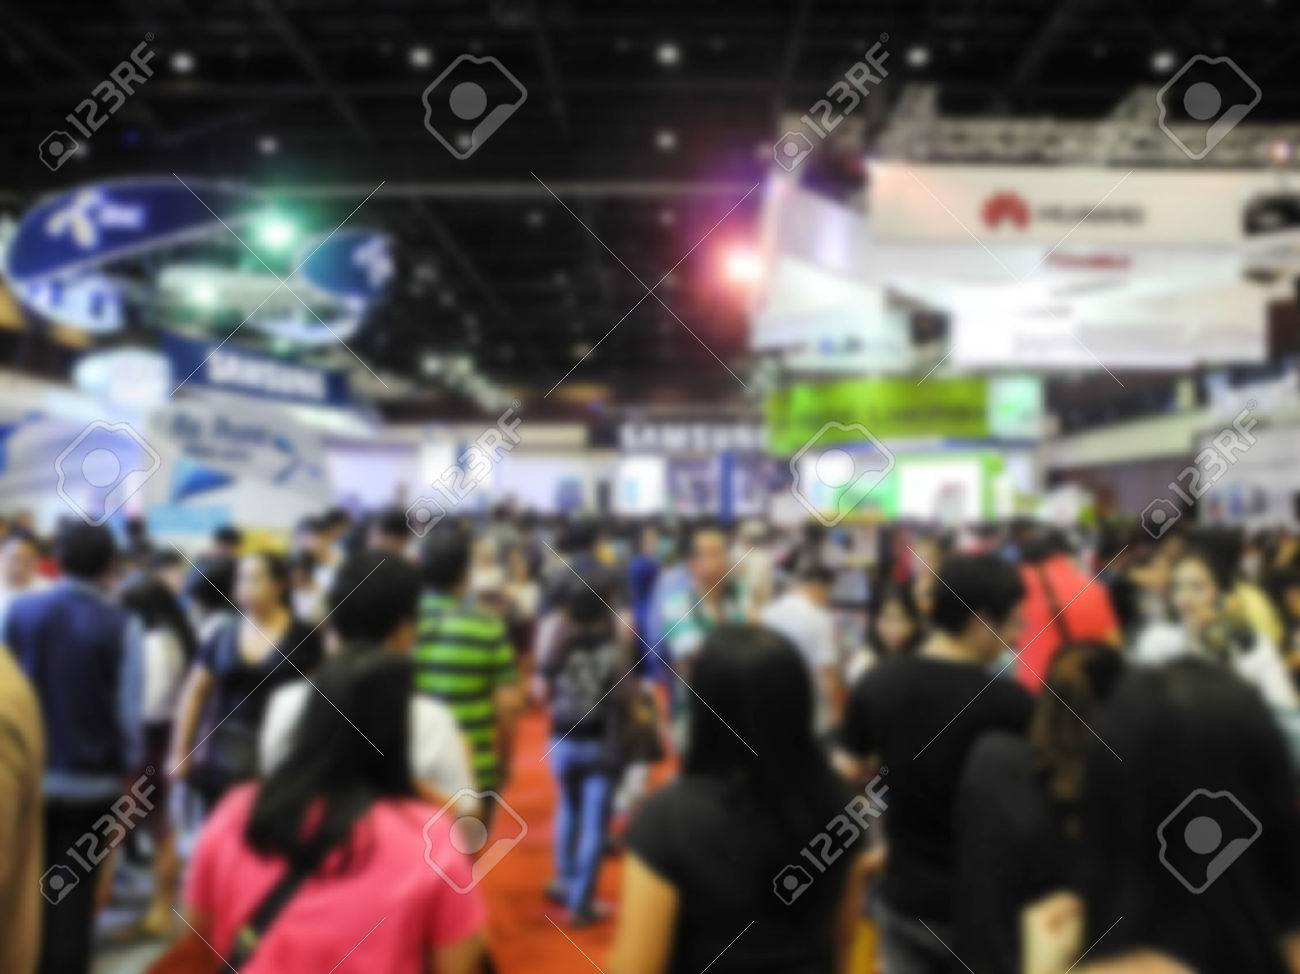 Abstract people walking in exhibition blurred background Archivio Fotografico - 46696012